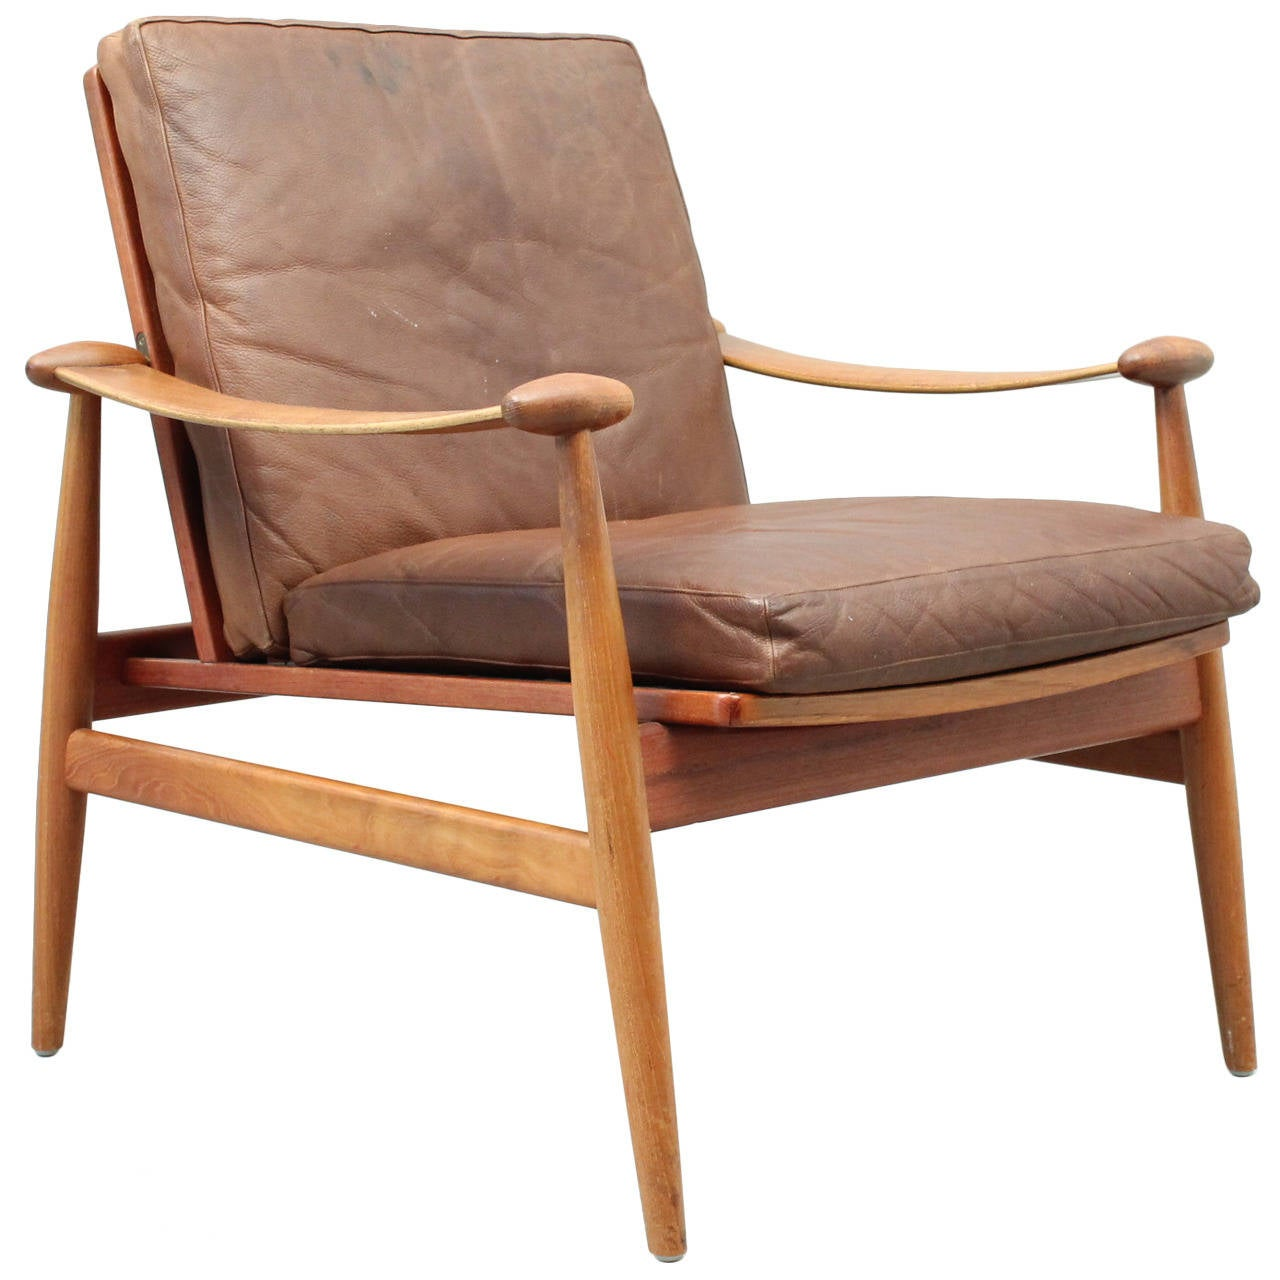 Finn juhl spade chair fd133 with brown leather danish for Mid century modern leather chairs